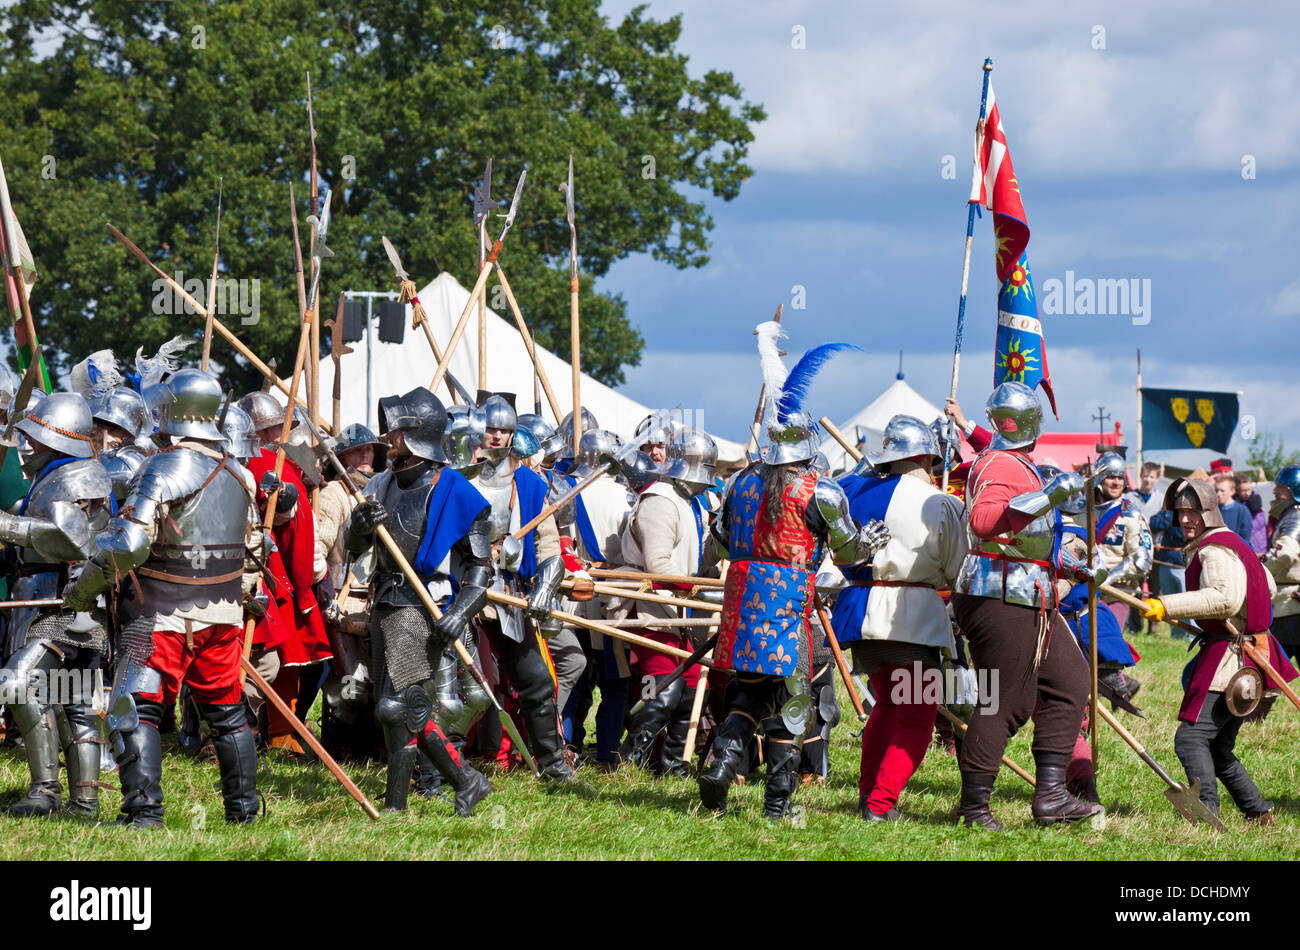 Bosworth Battlefield, near Hinckley, Leicestershire, UK. 18th Aug, 2013. The Wars of the Roses Federation re-enact - Stock Image